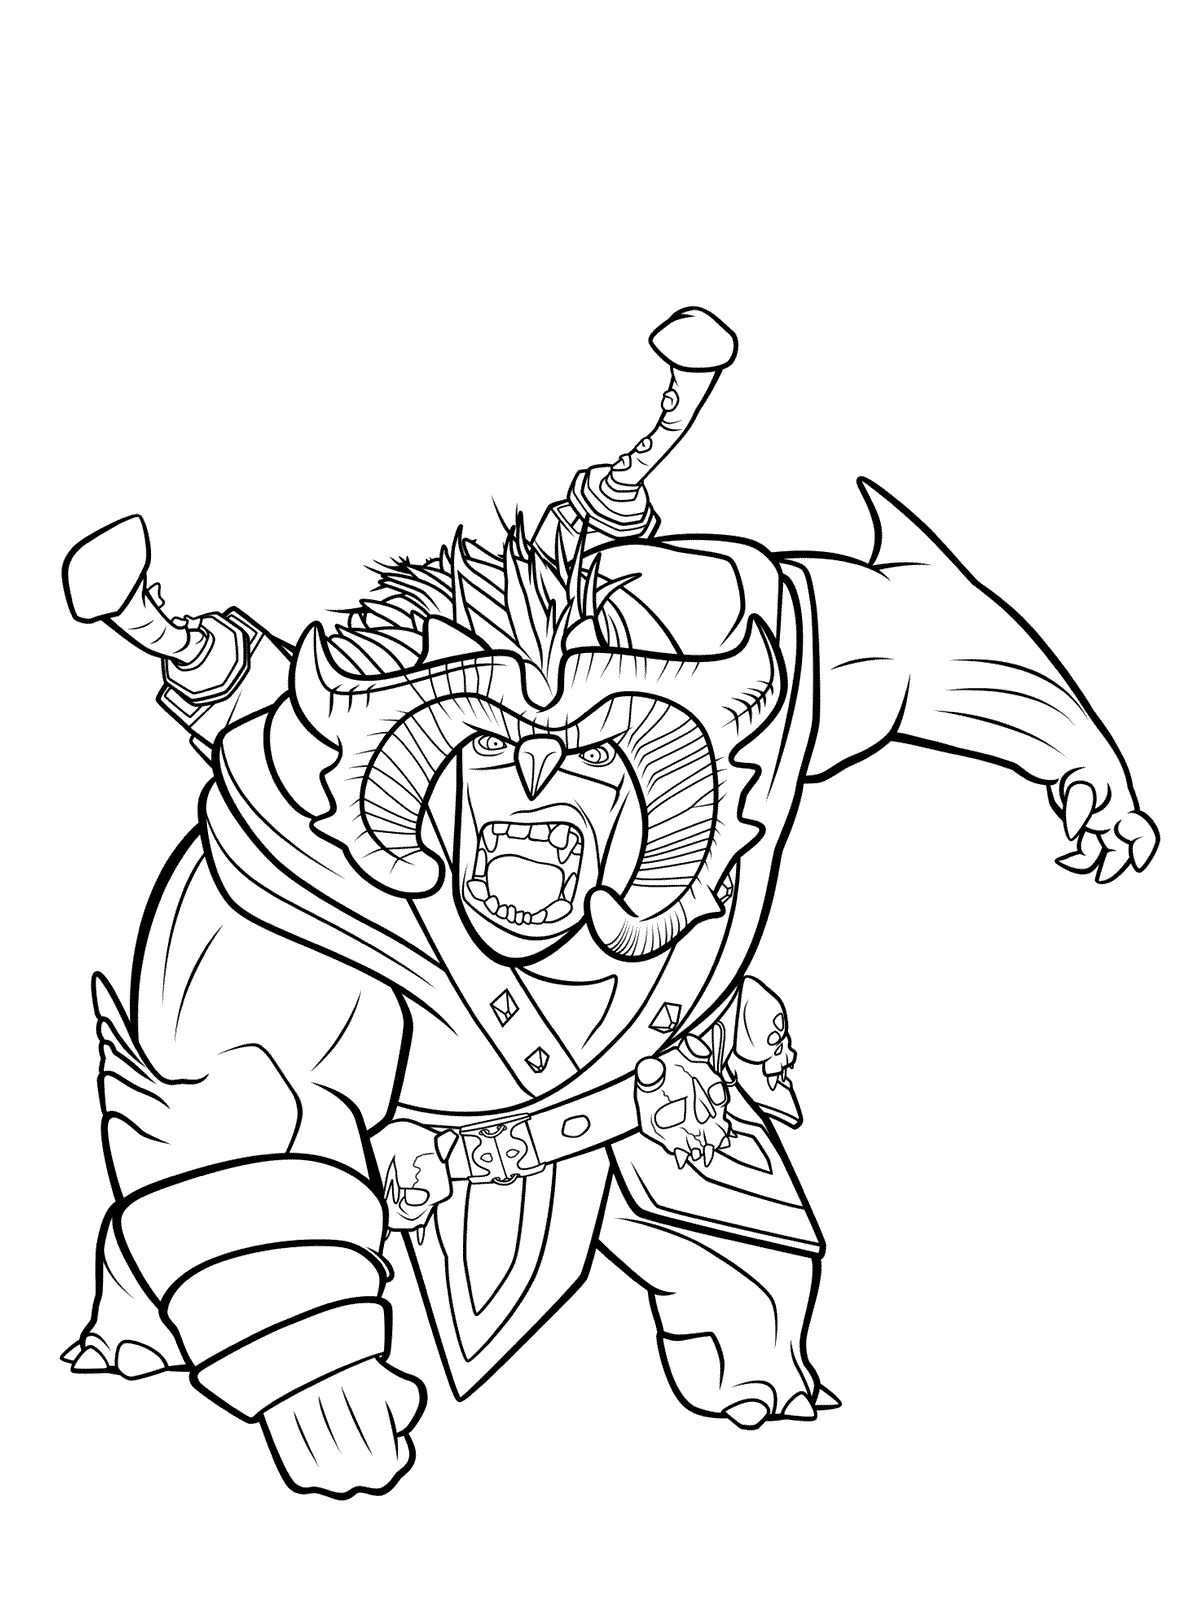 Kids-n-fun.com | 10 coloring pages of Trollhunters A Coloring Page